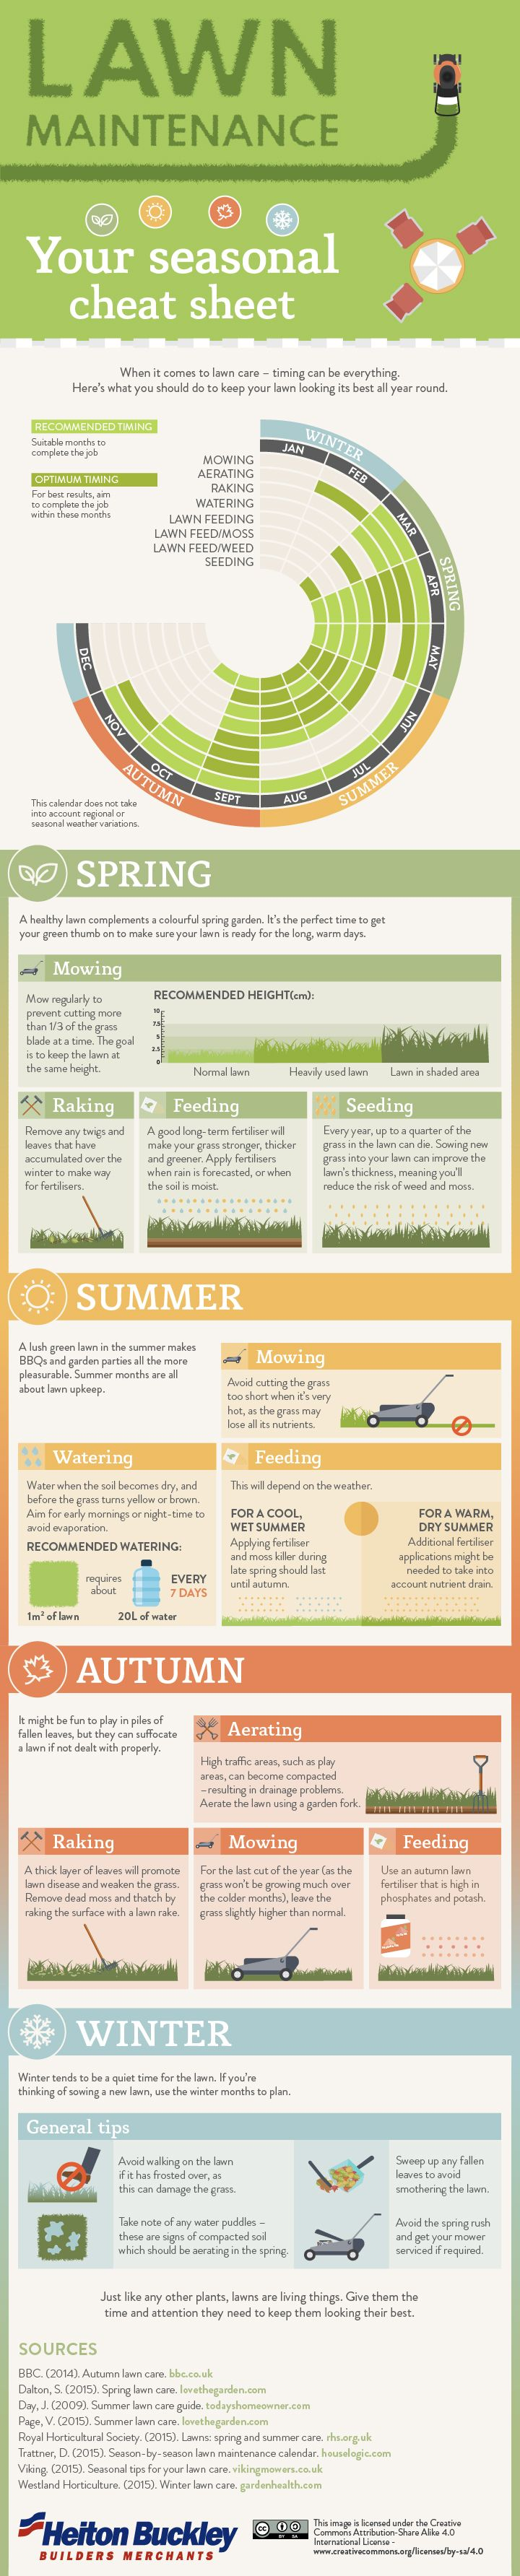 Lawn Service Invoice Aaron Holsworth Aaronholsworth On Pinterest